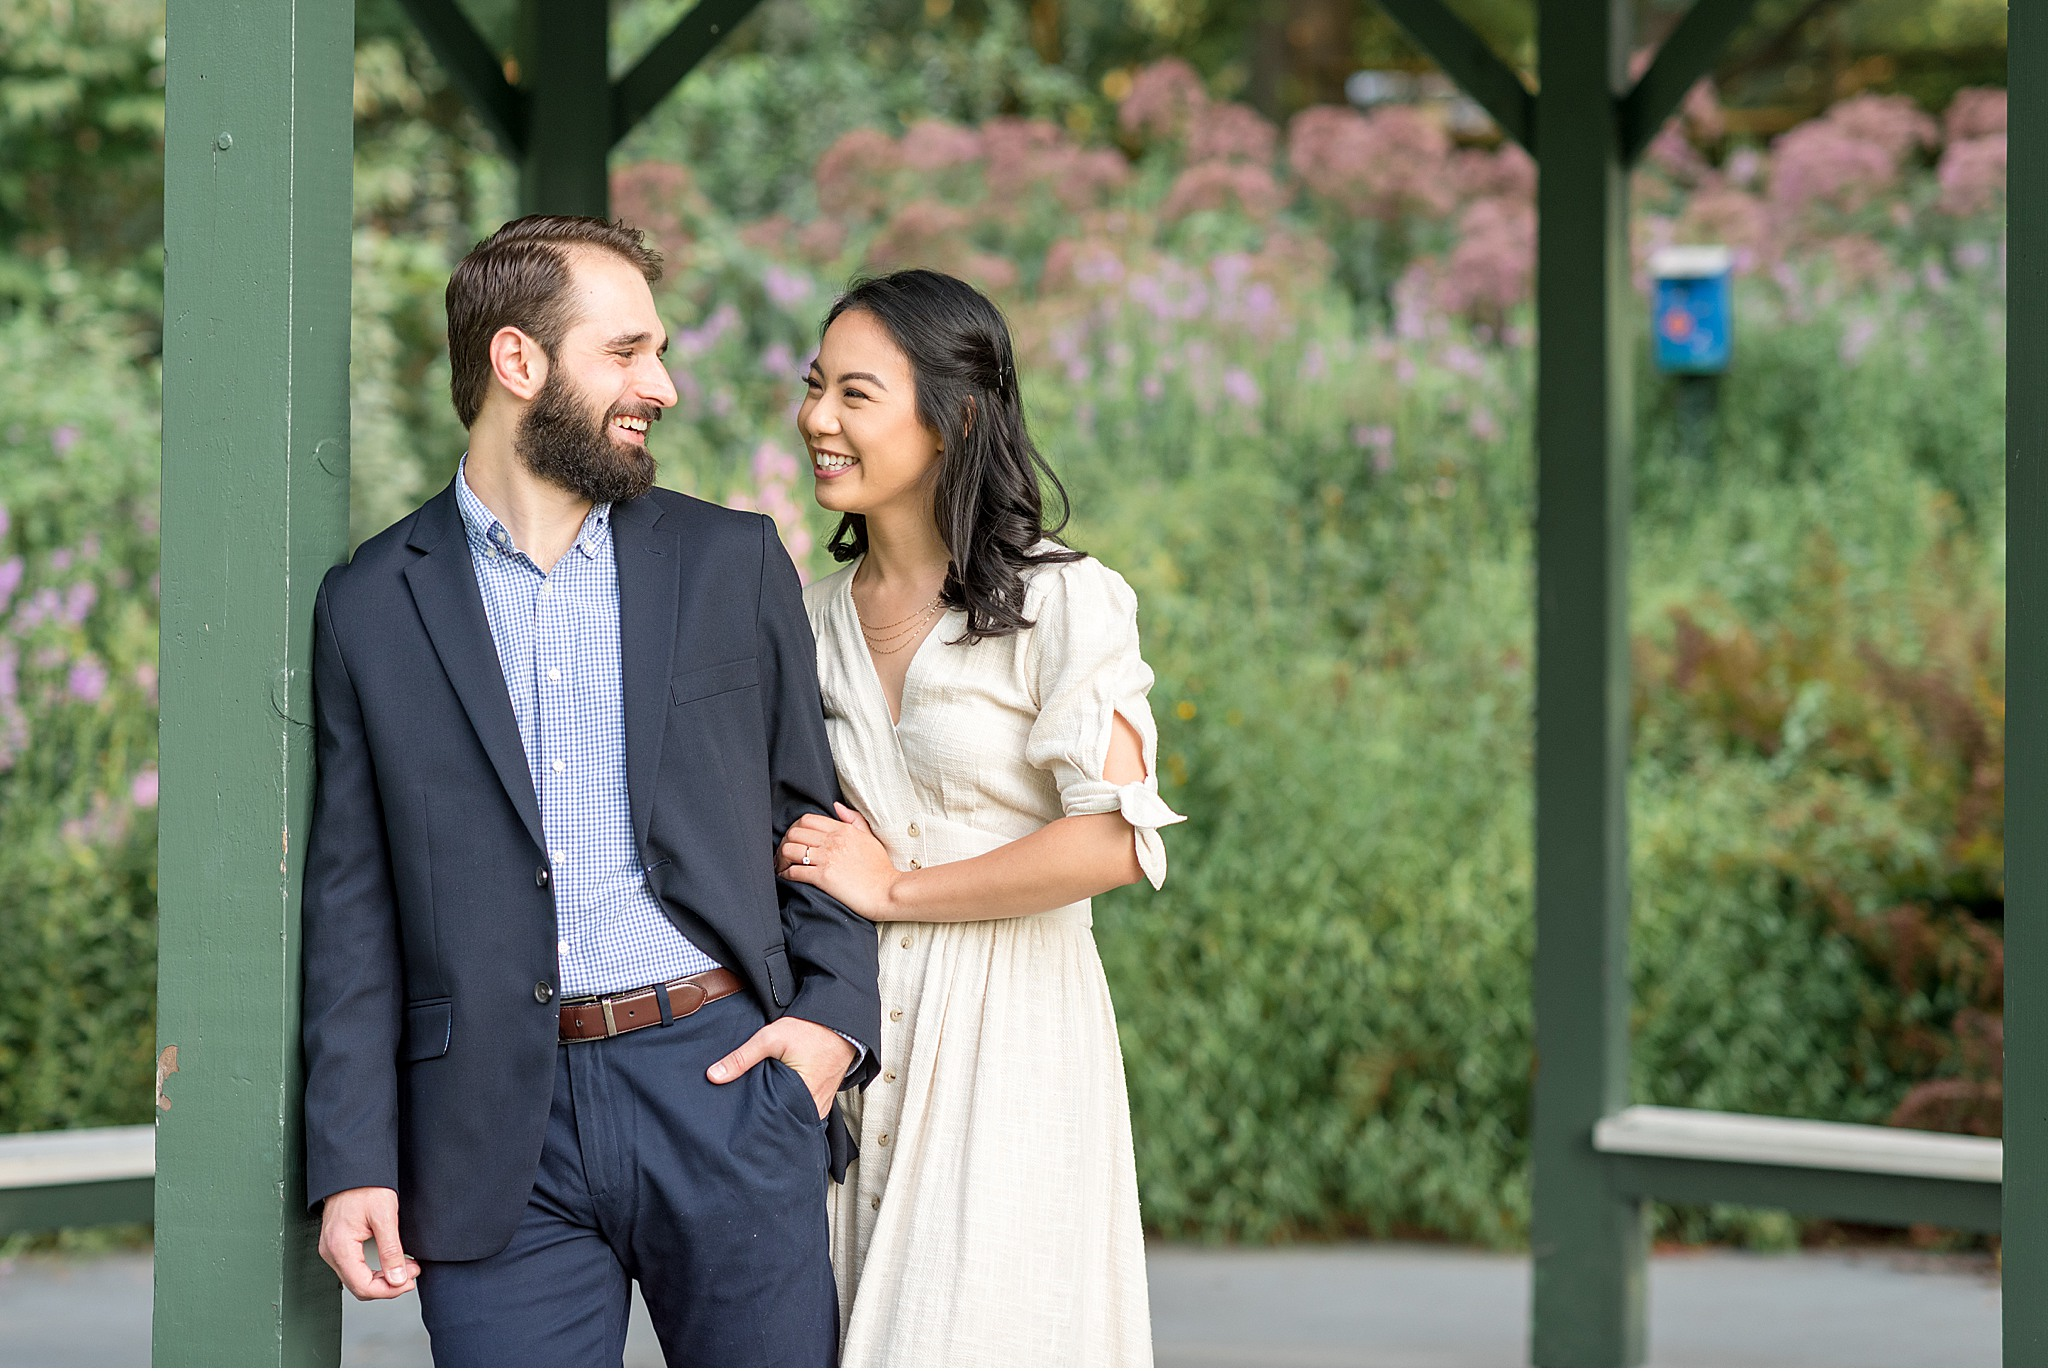 Rockford Plantation Lancaster County Wedding Engagement Photography_3912.jpg